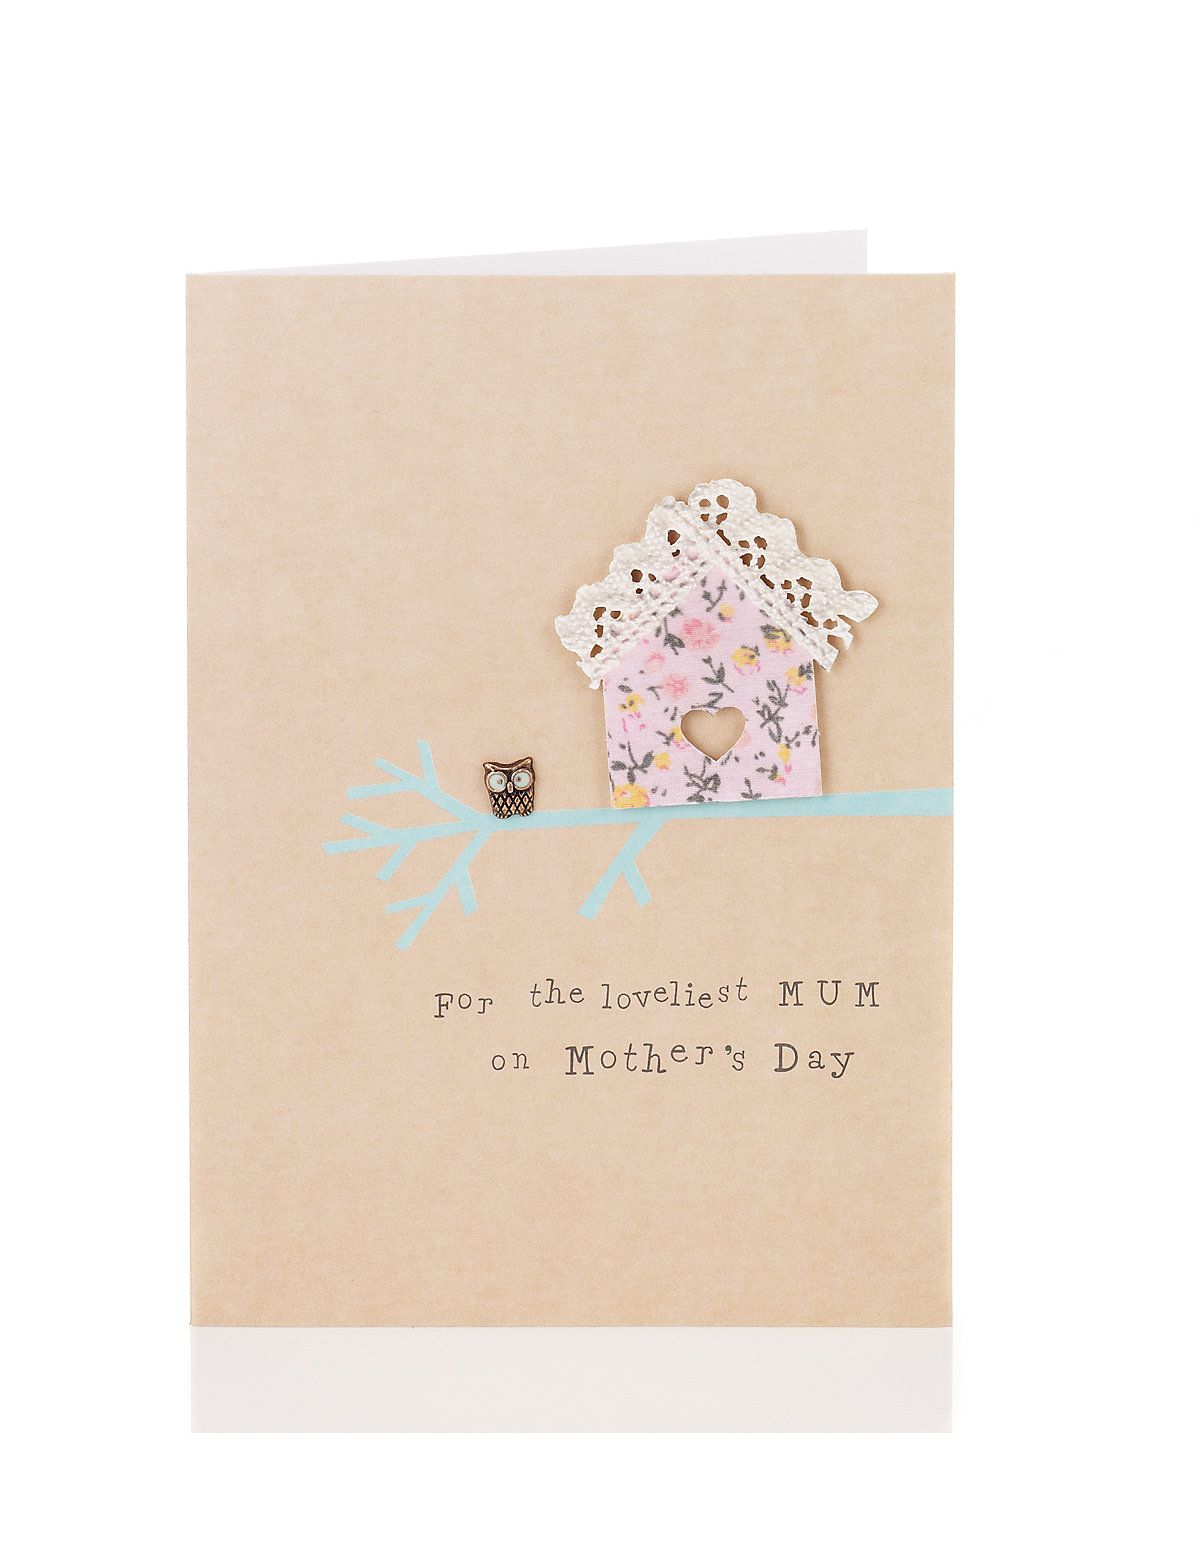 Floral birdhouse mothers day card ms greeting cards floral birdhouse mothers day card ms kristyandbryce Image collections